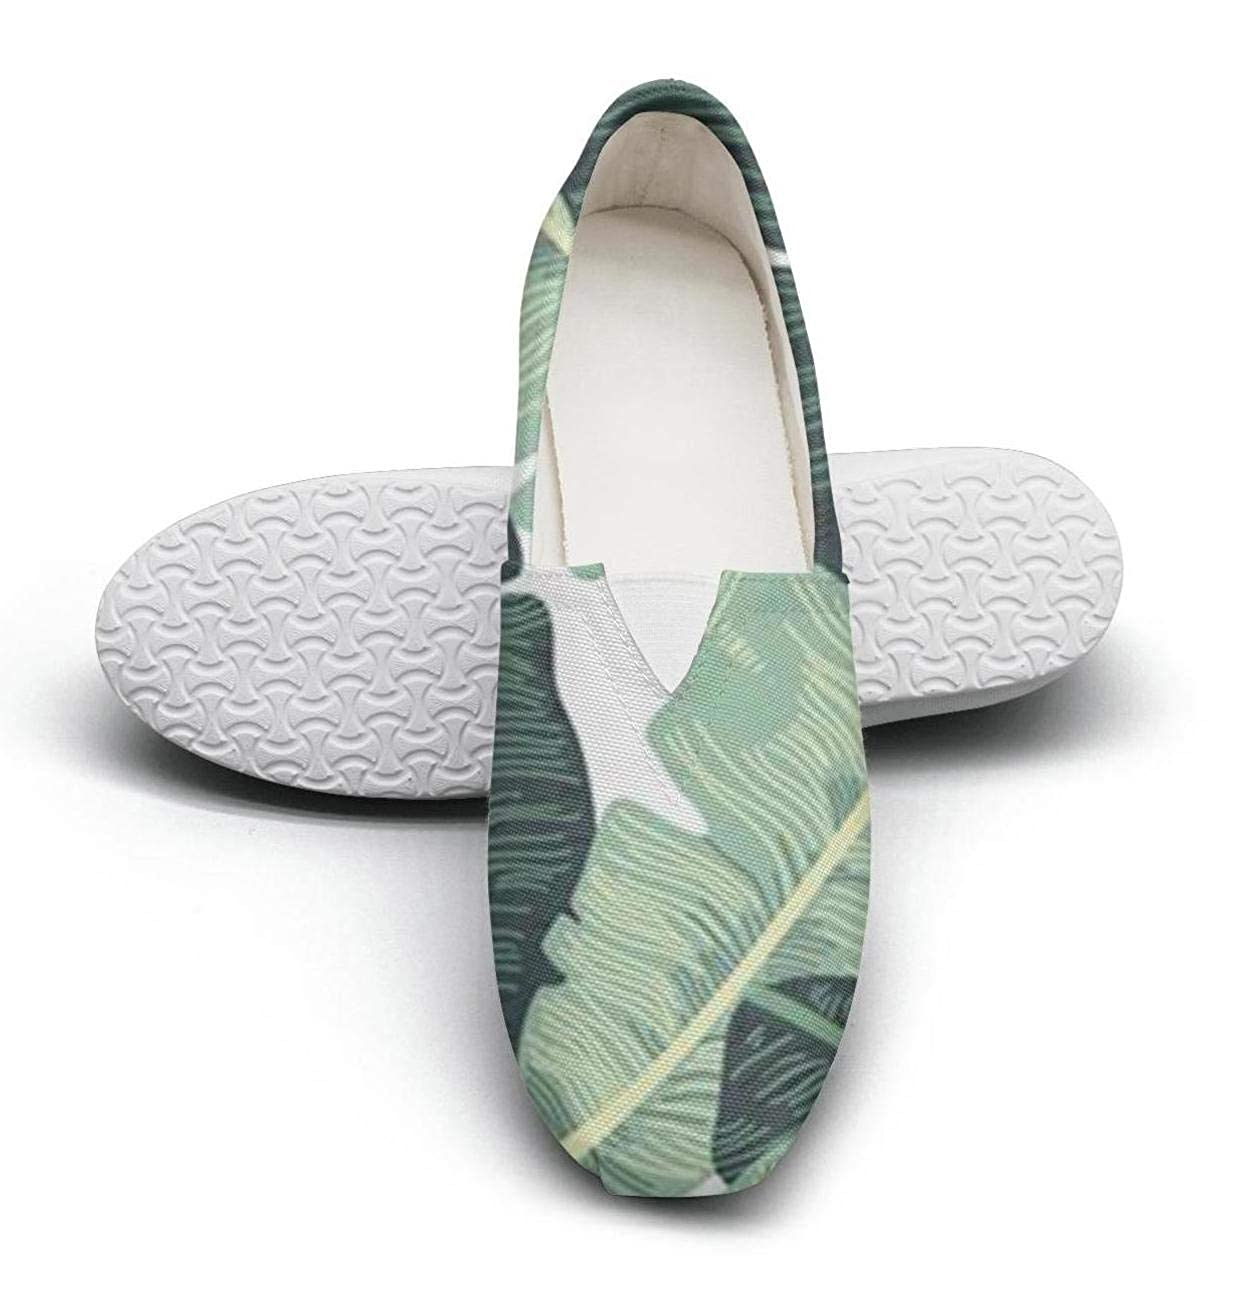 nkfbx Tropical Plant Banana Leafs Casual Flat Canva Shoes for Women Exercise